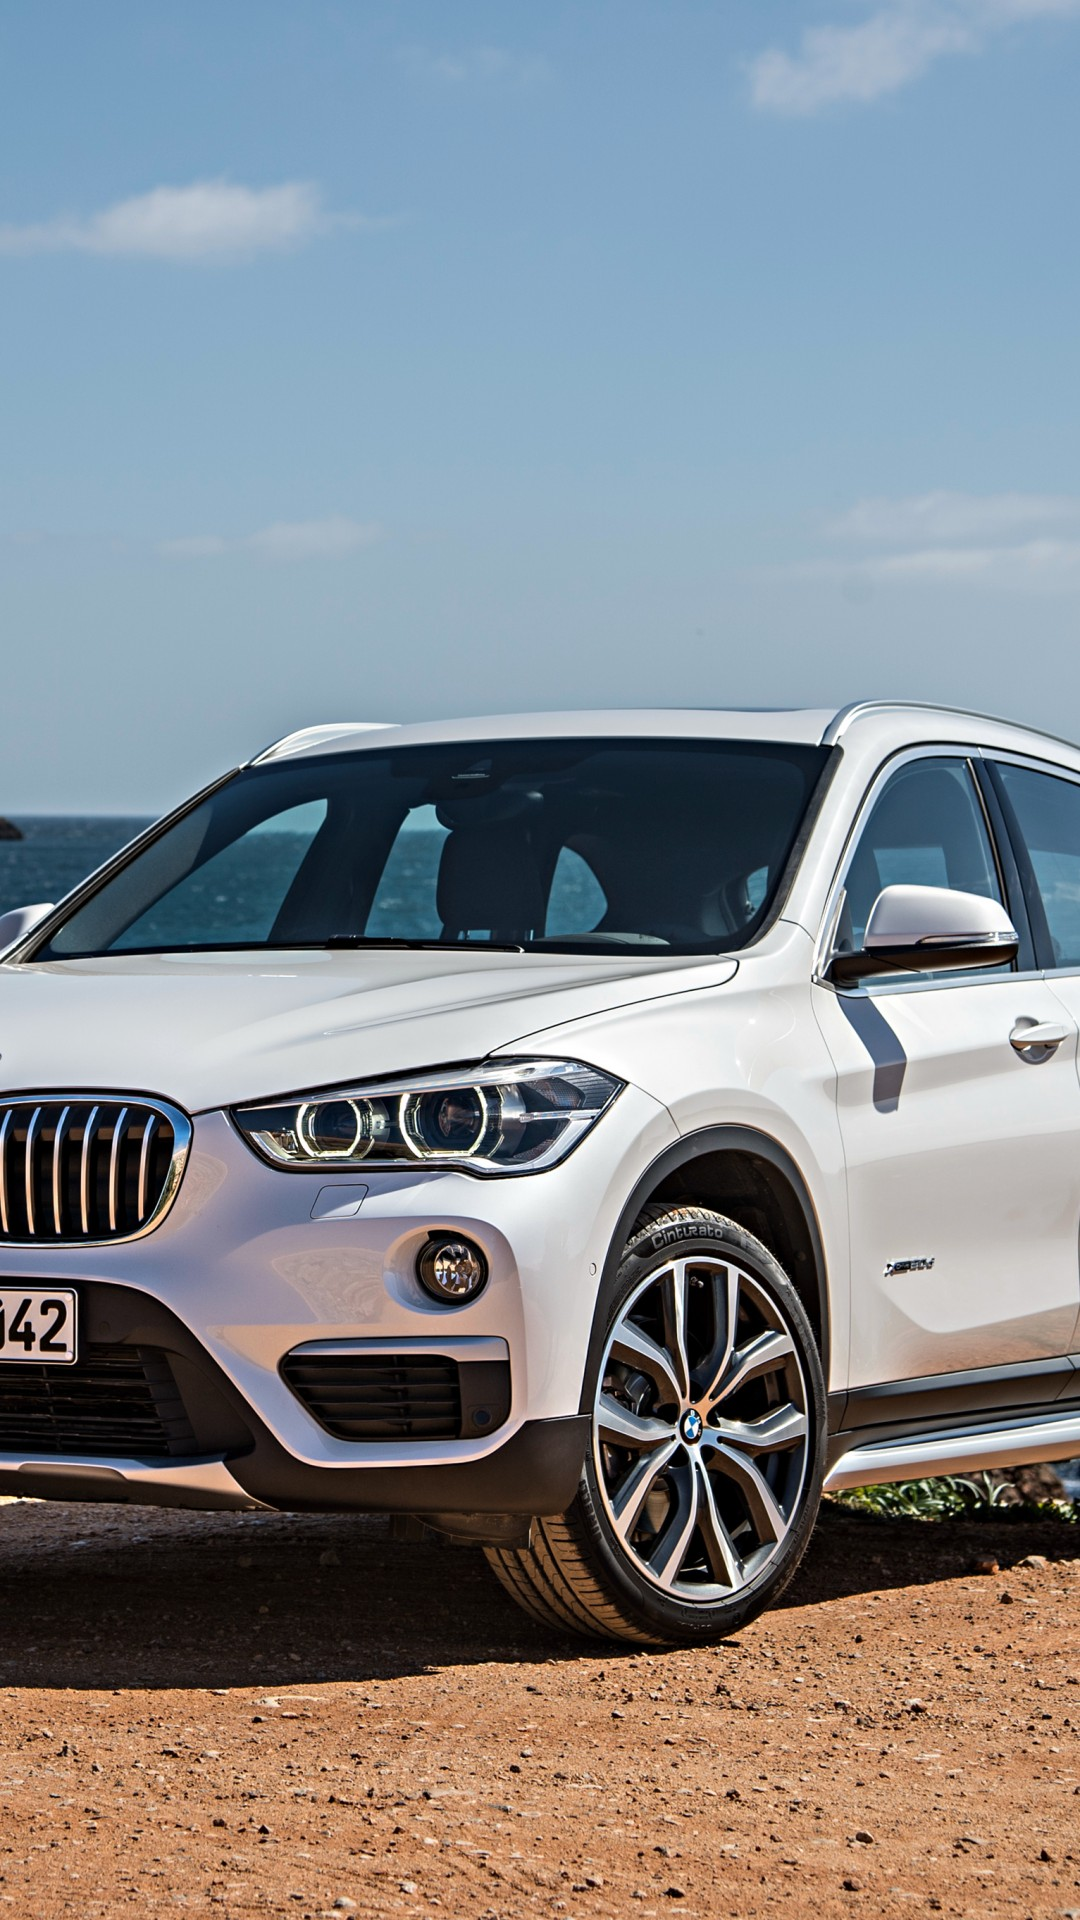 wallpaper bmw x1 crossover luxury cars white suv